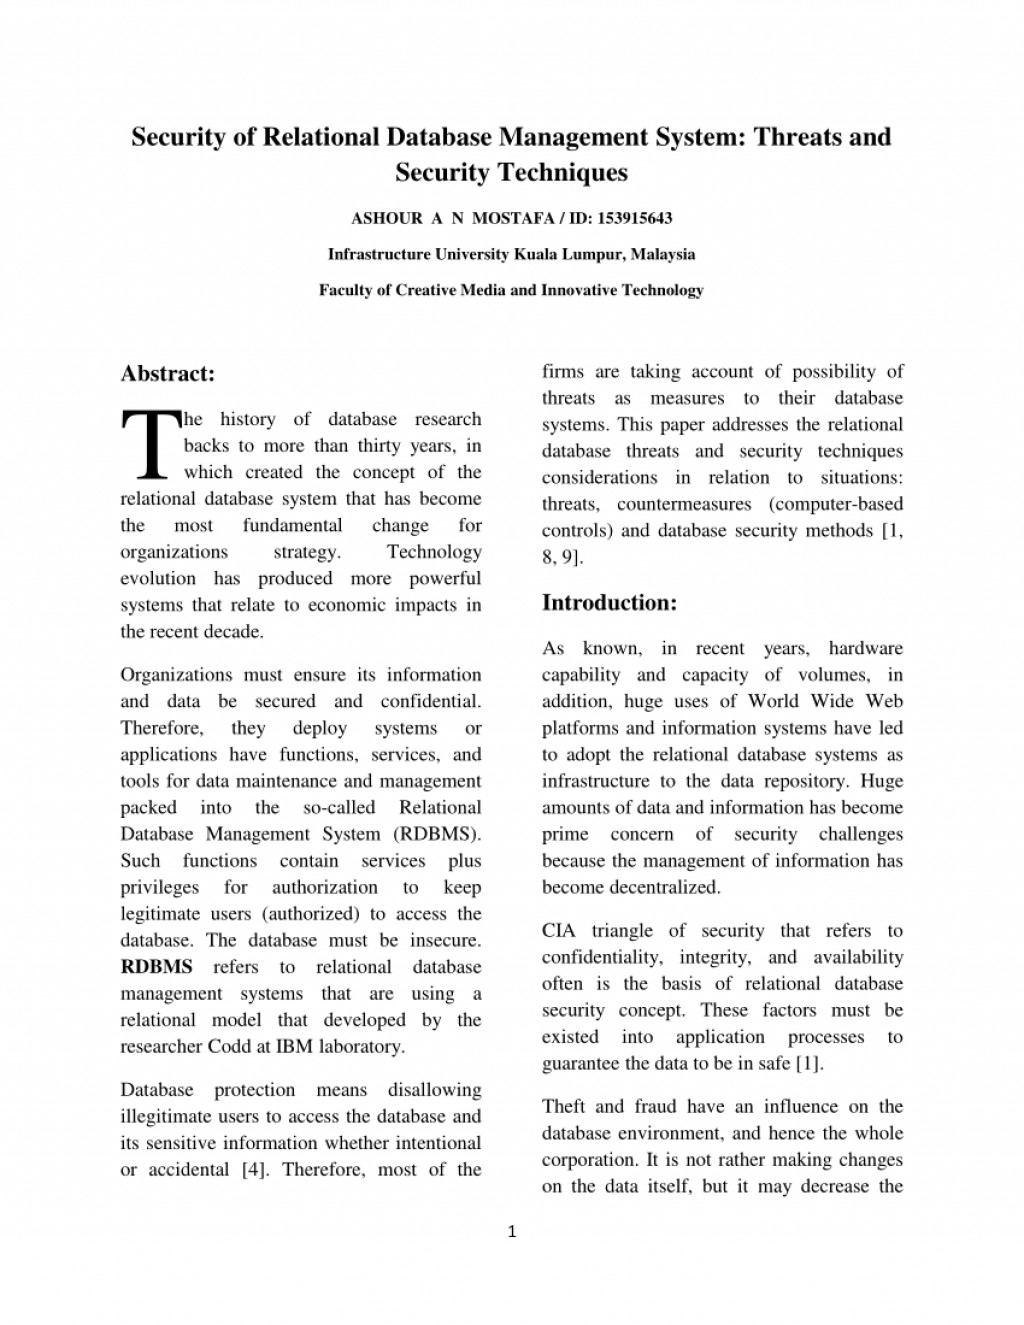 001 Research Paper Largepreview Database Security Frightening Papers Ieee Data - Draft Large